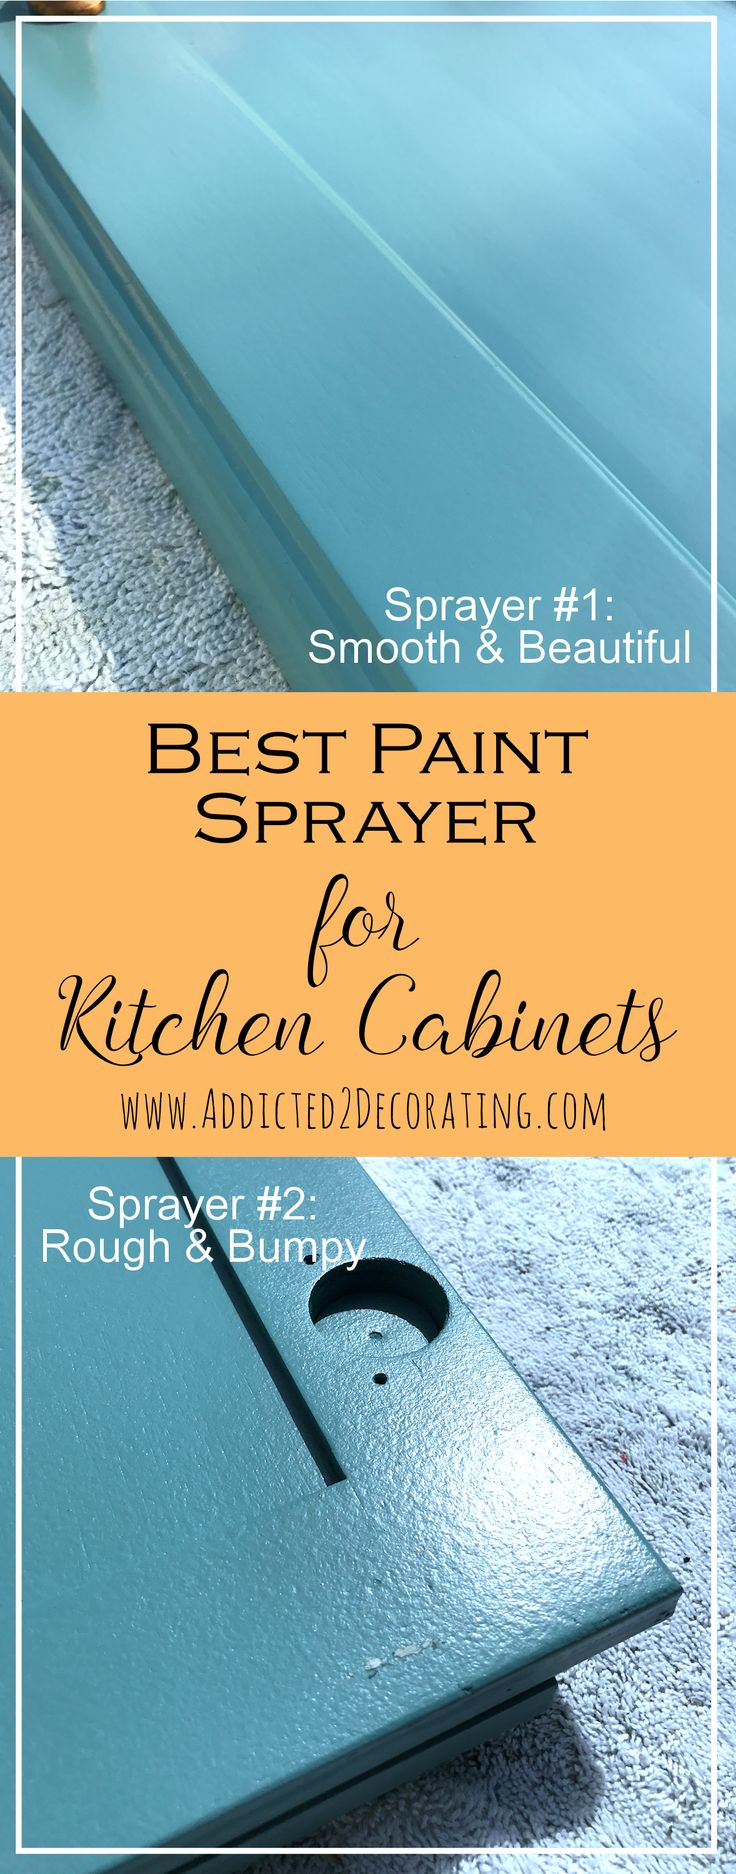 The Best Paint Sprayer For Kitchen Cabinets (Plus Tips On Getting A Beautiful Finish)